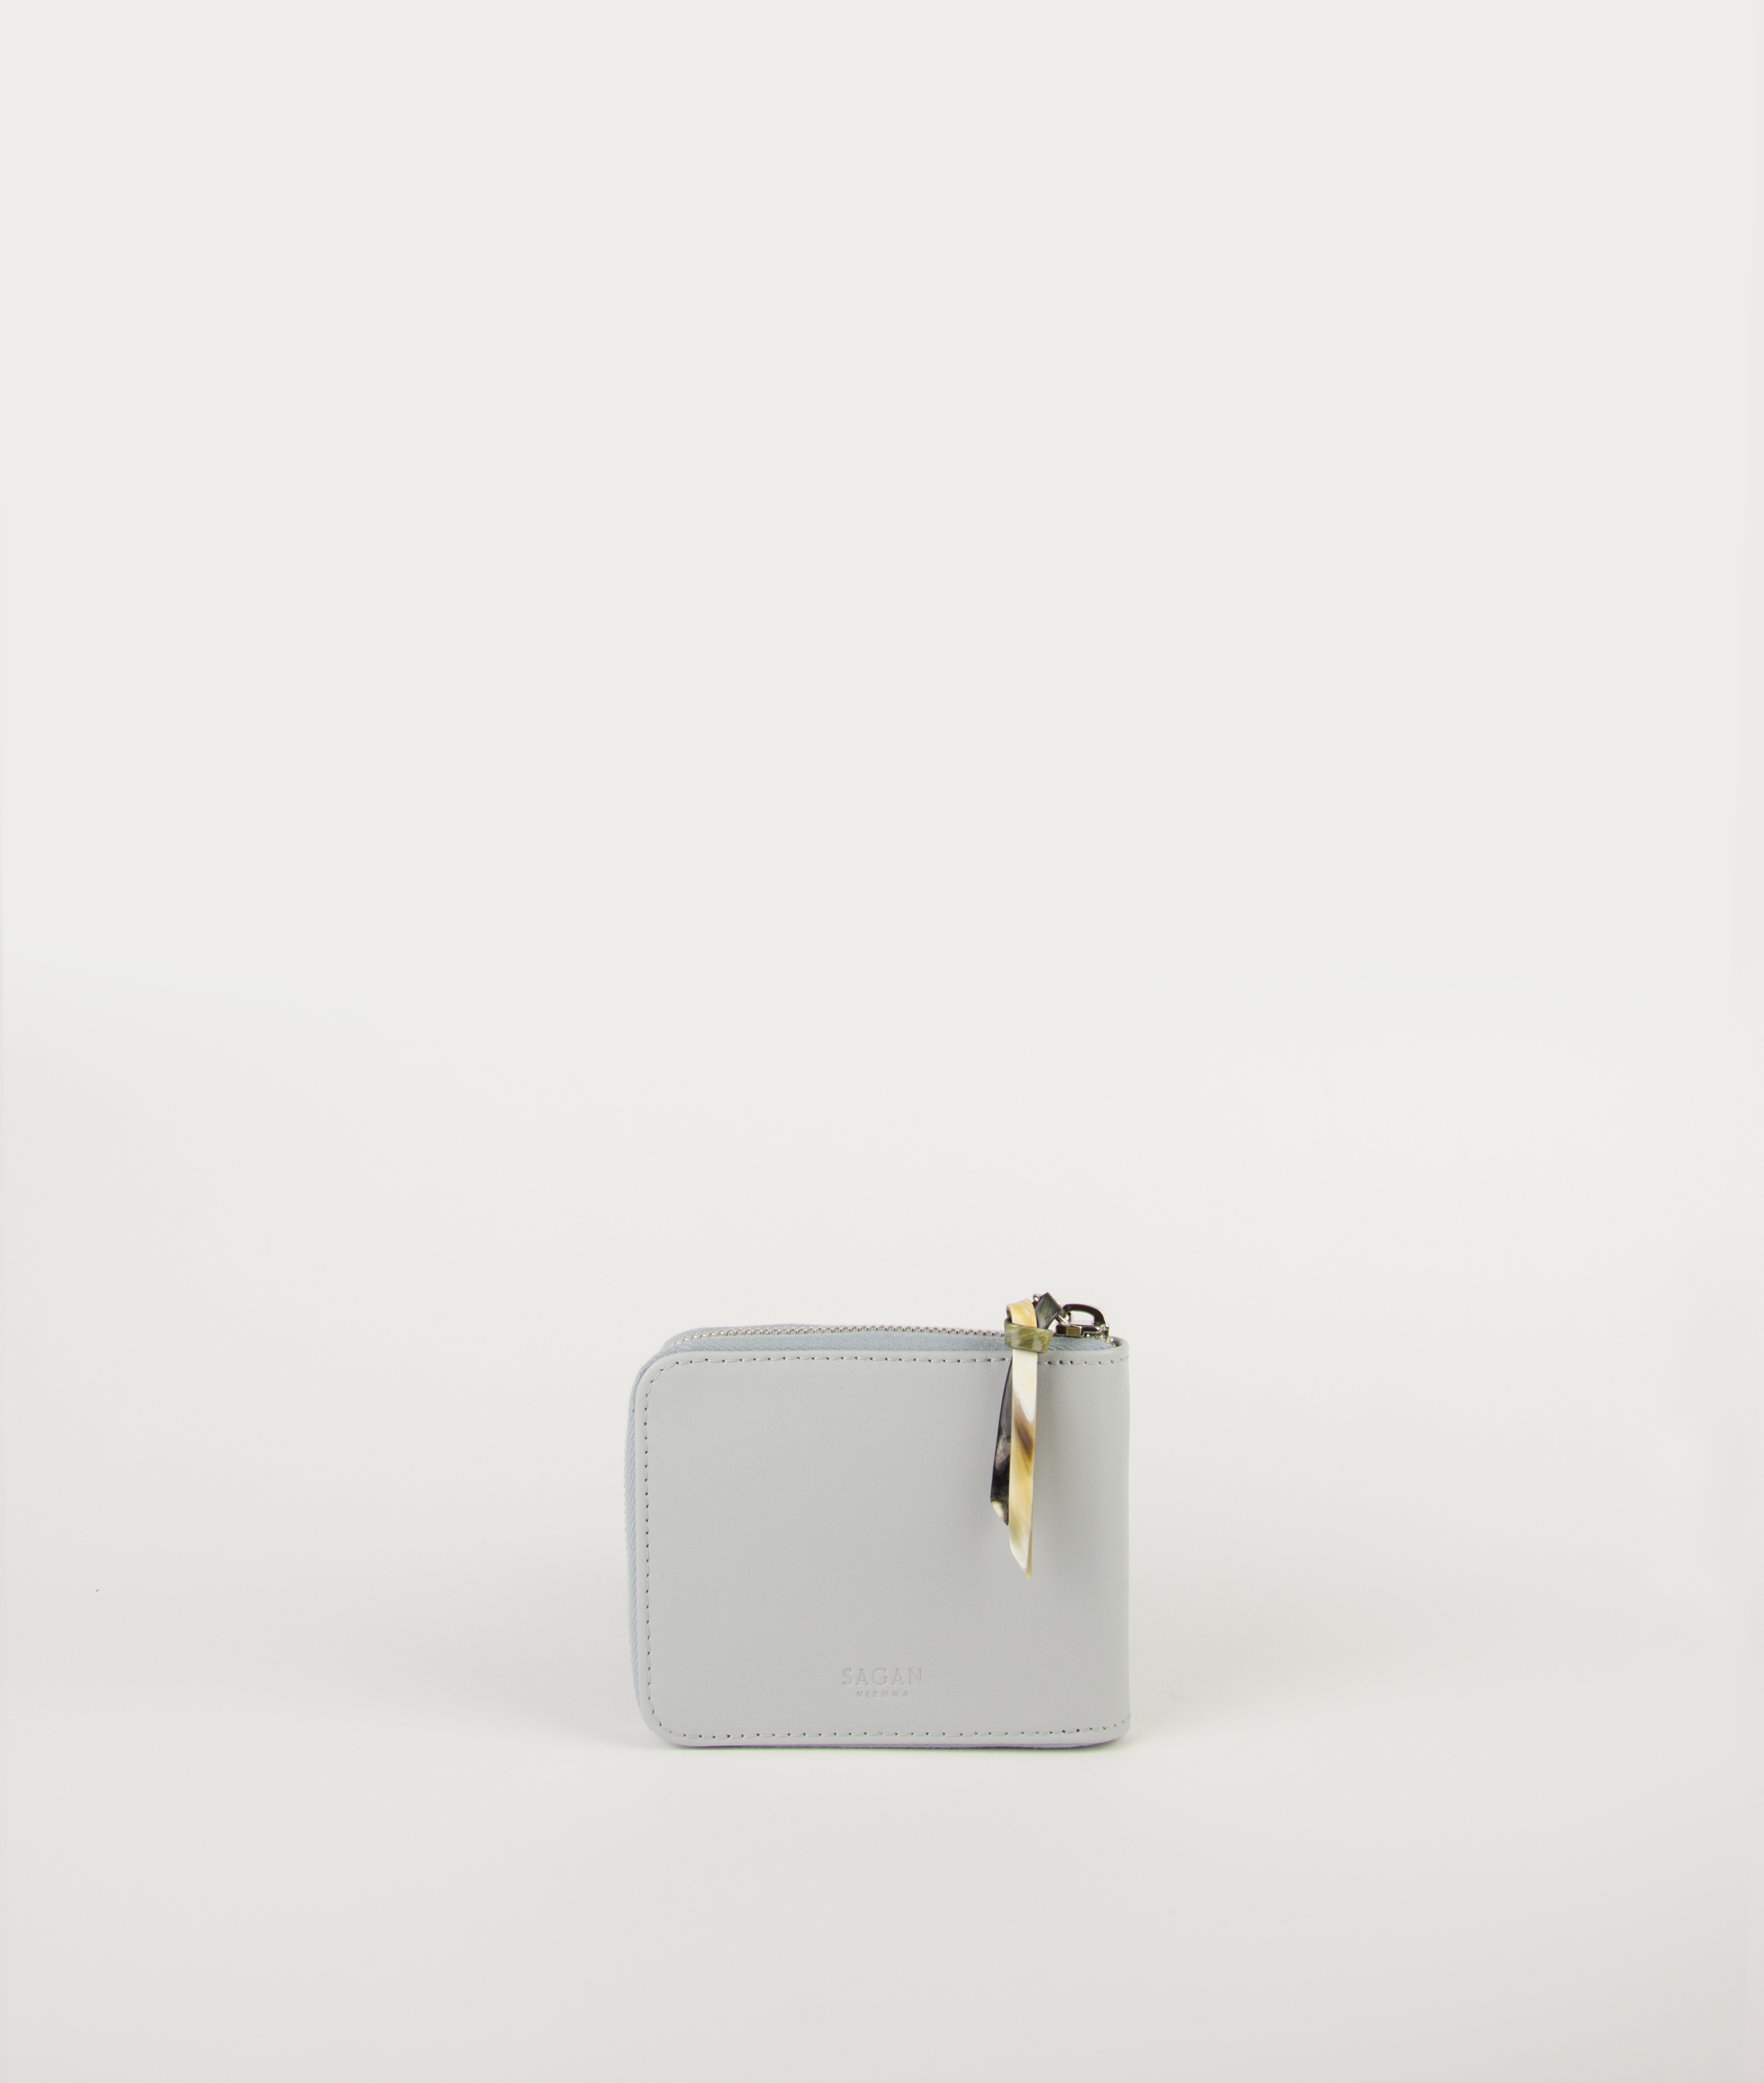 WALLET SQUARE_LIGHT GRAY with HORN PULLER